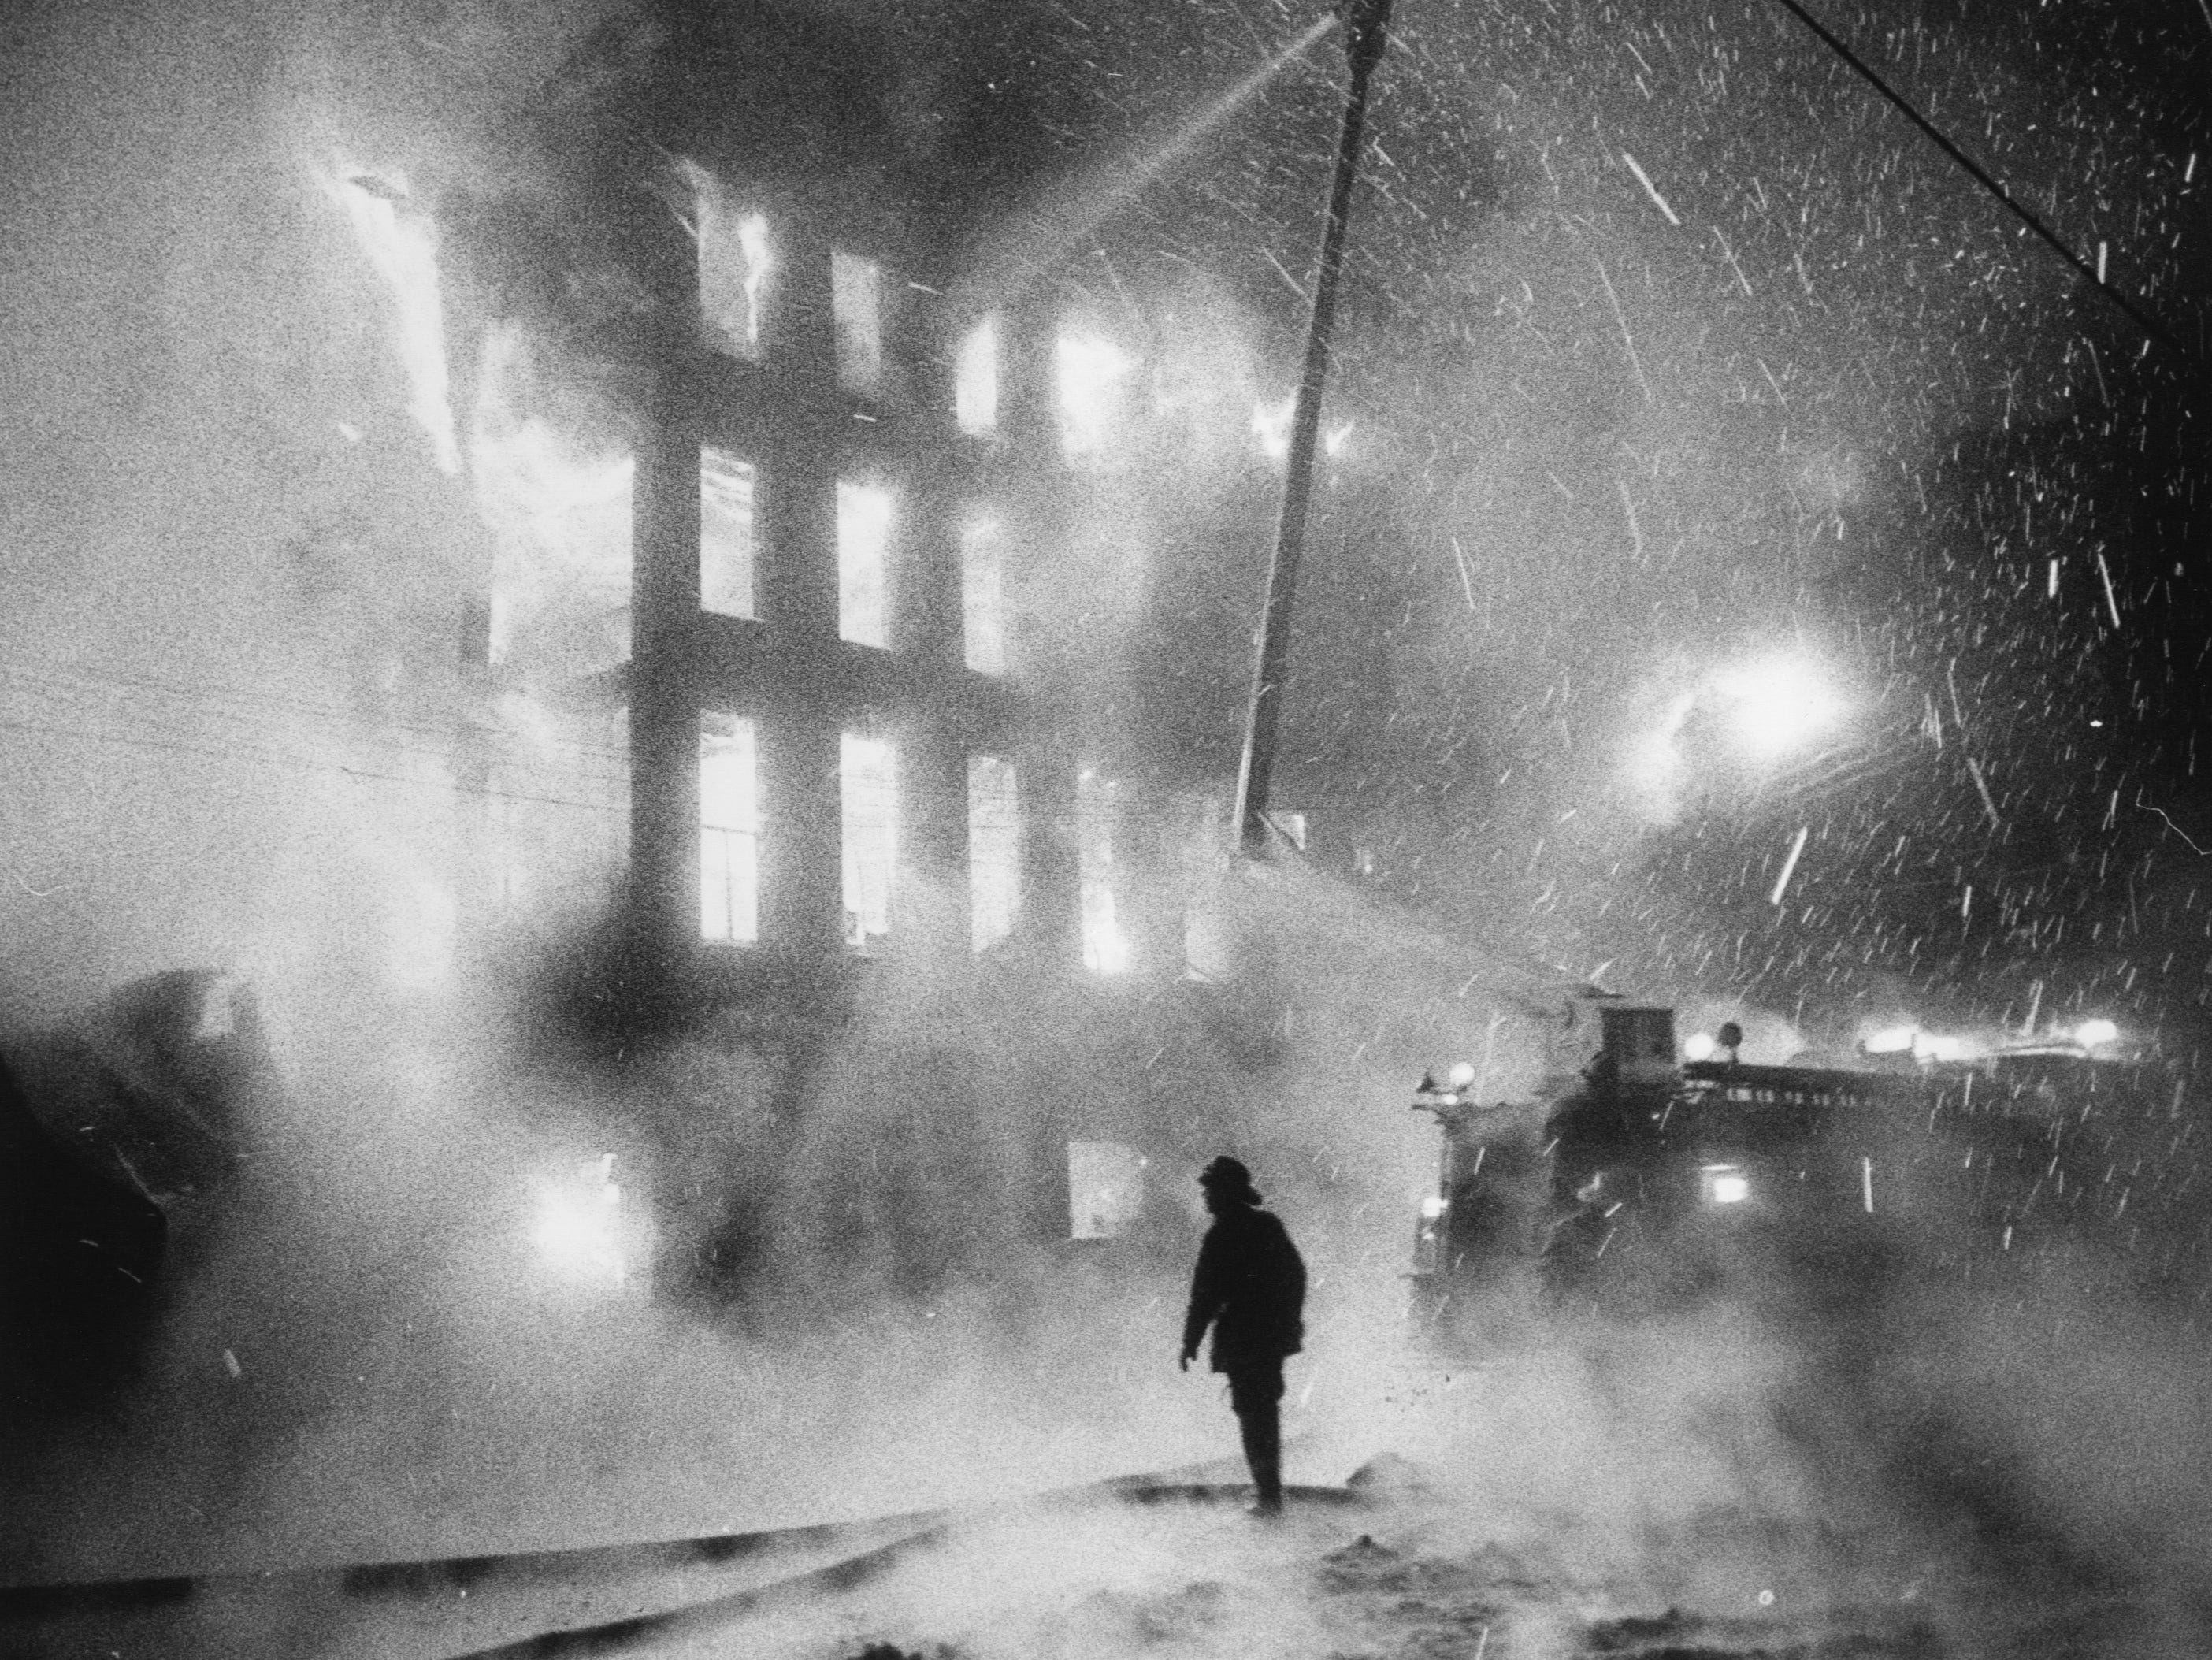 A three-alarm fire at Brinley-Hardy Co. on Preston between Main and Market. 